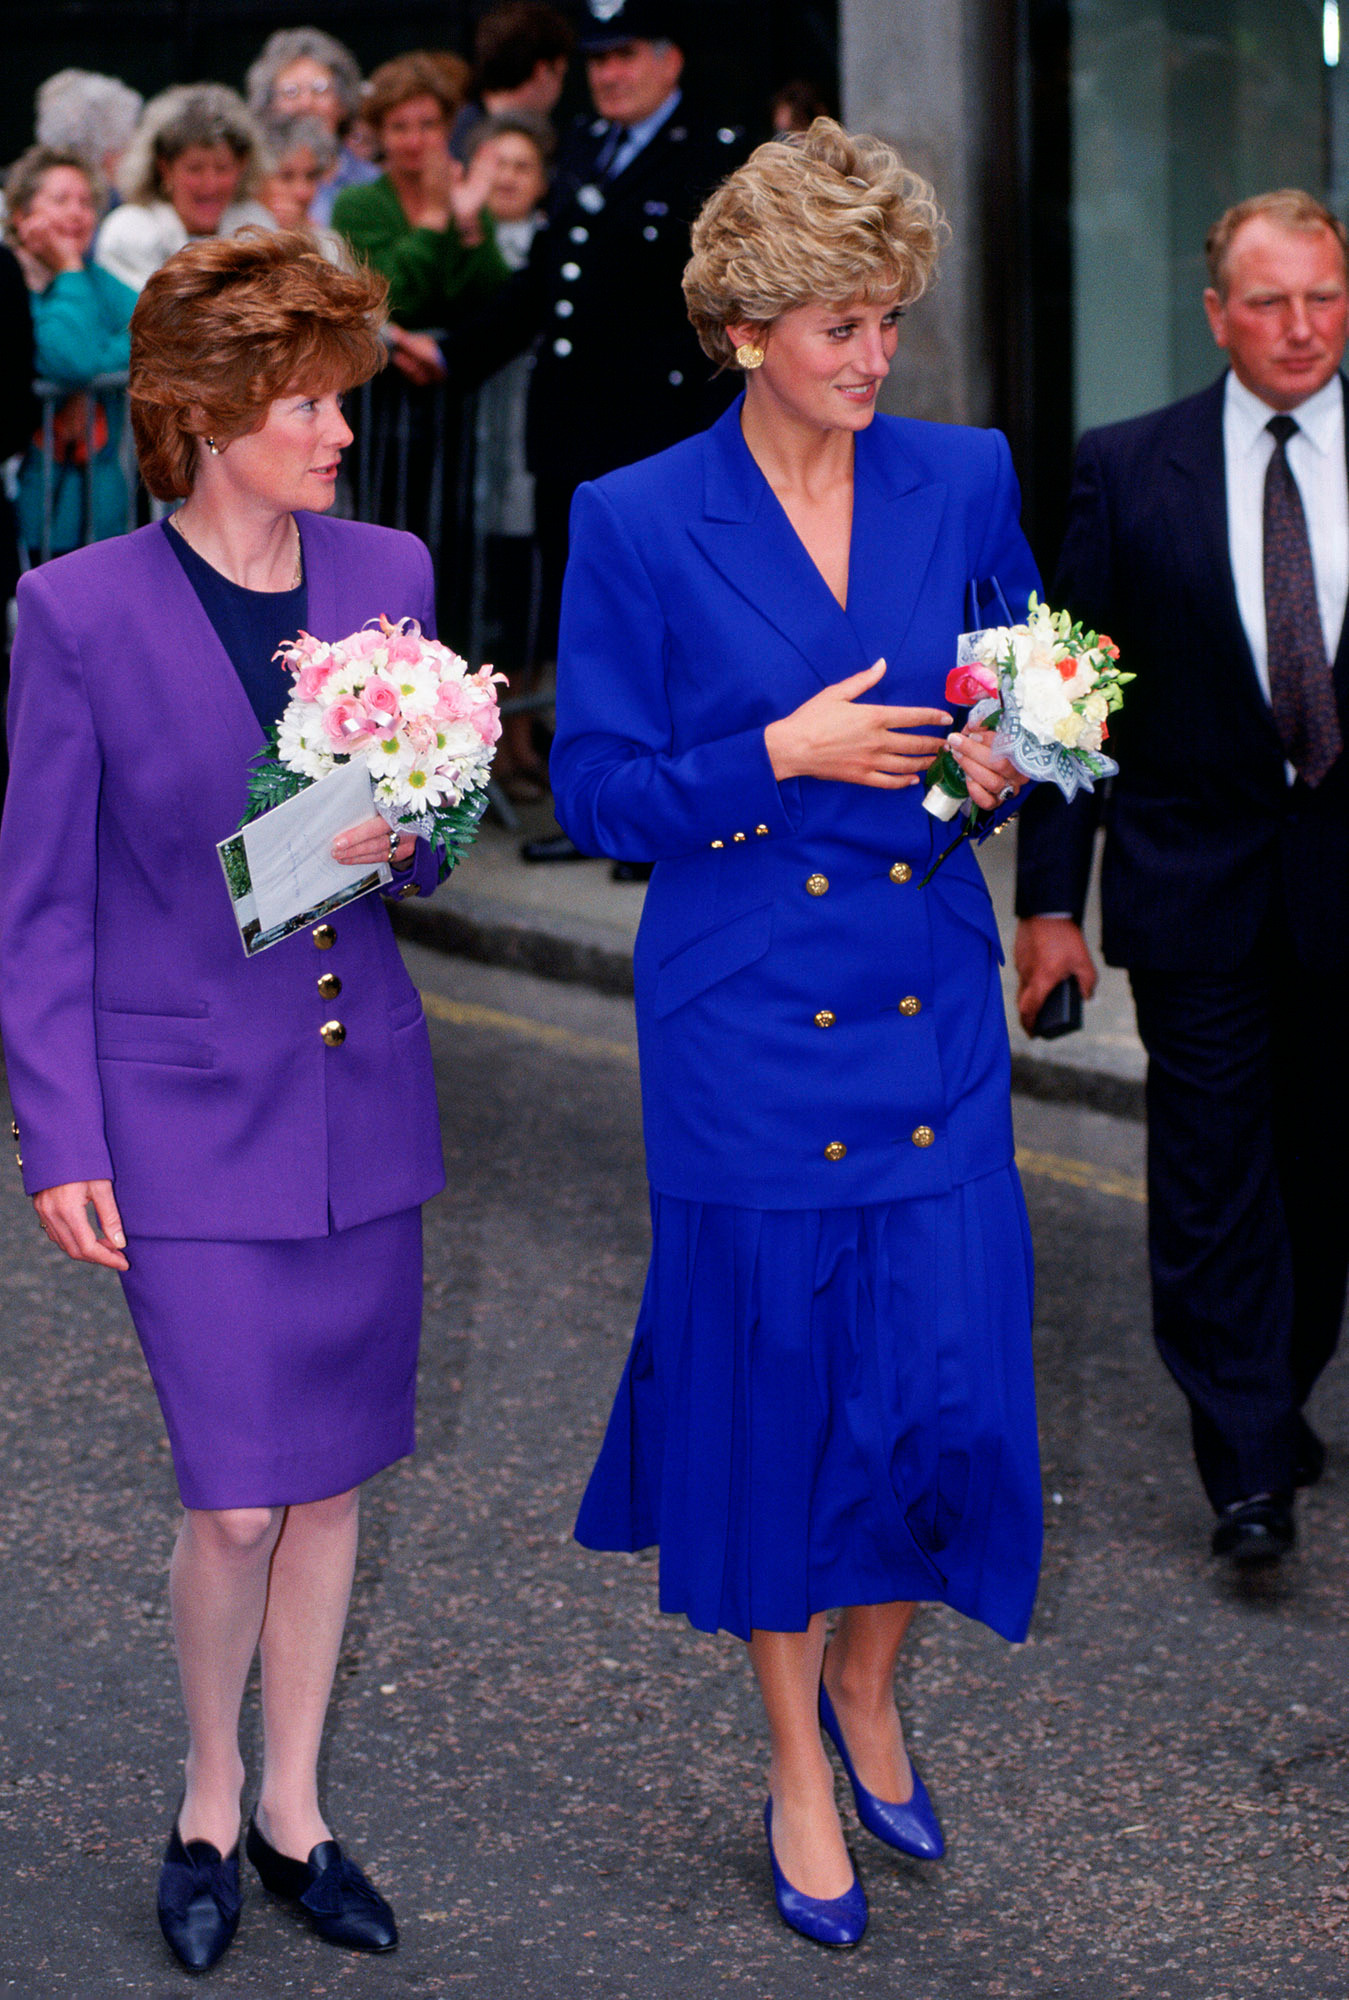 McCorquodale doesn't often speak about her sister but has done so on select occasions Photo C INDIGO GETTY IMAGES